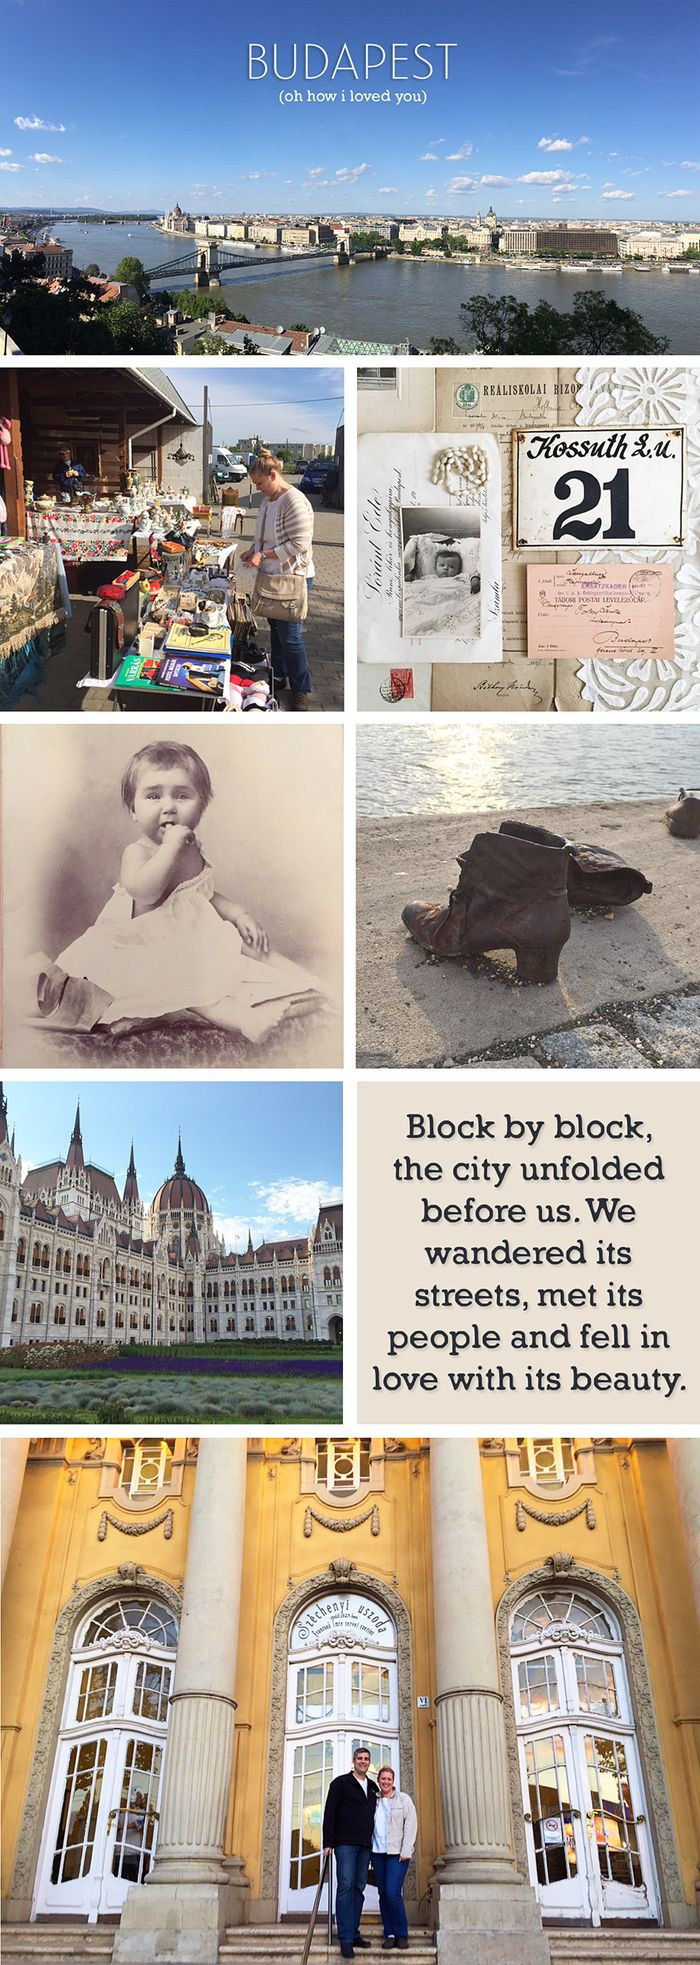 Budapest collage 2